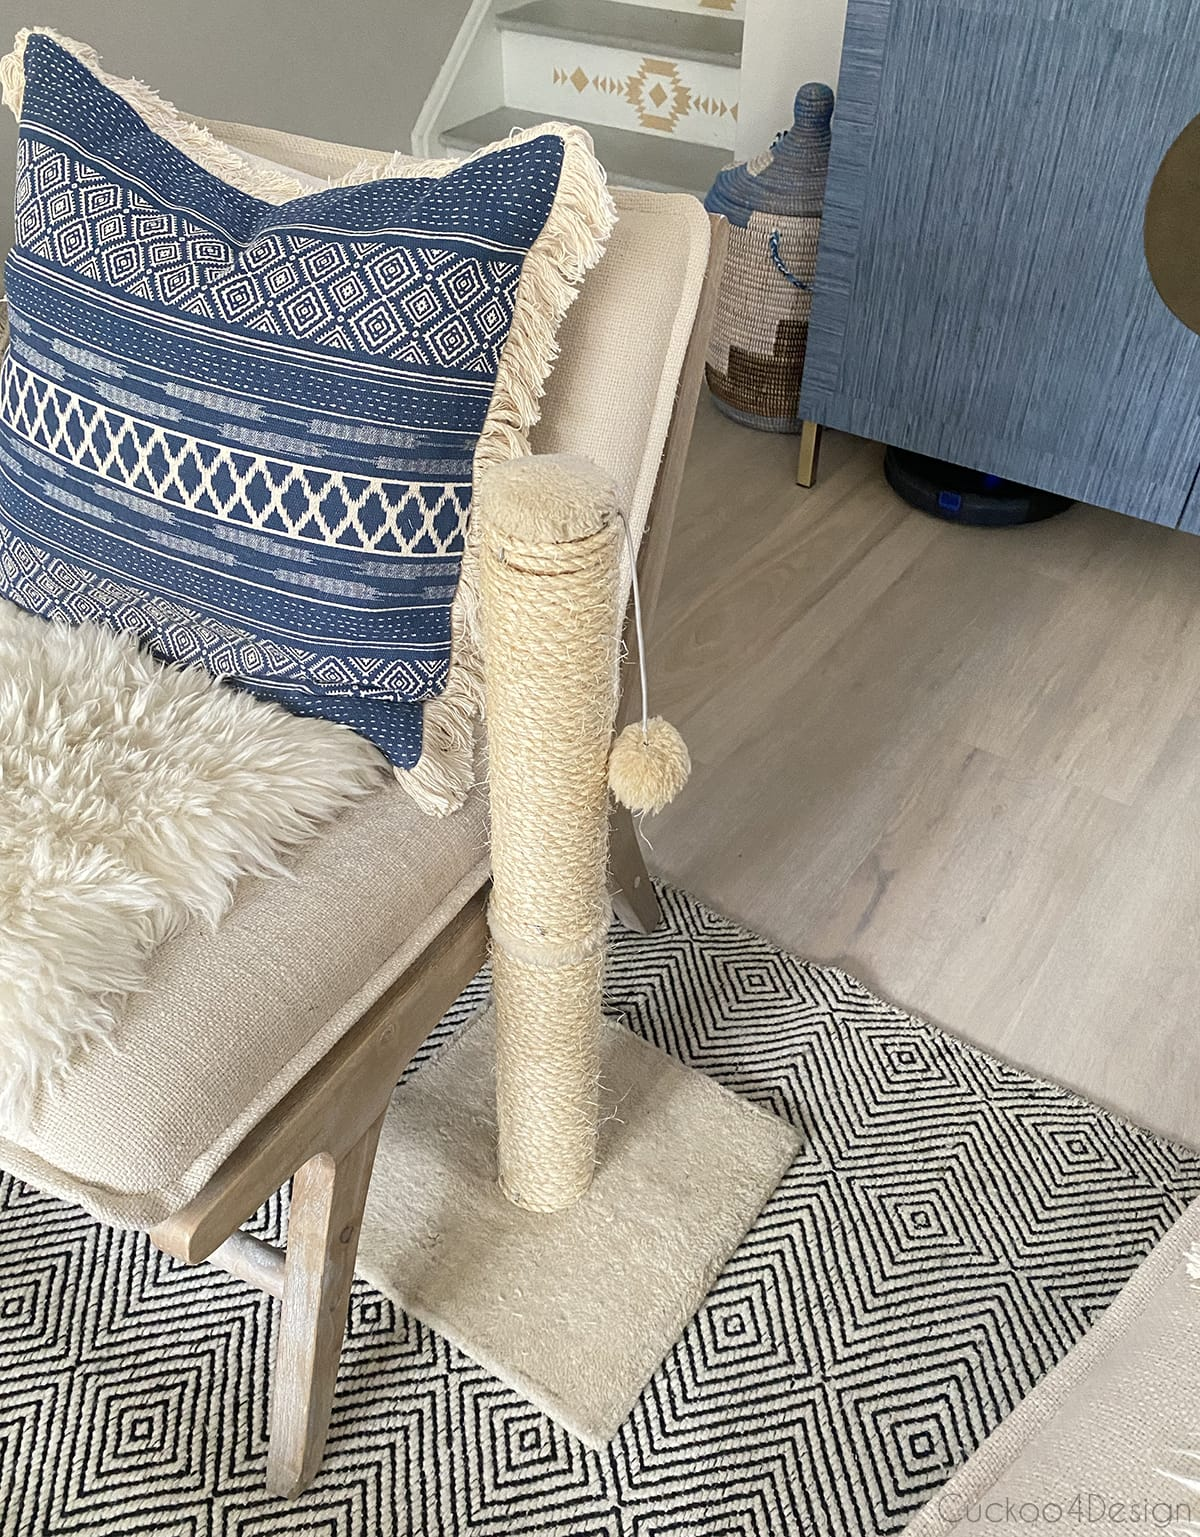 cat scratching post next to chair